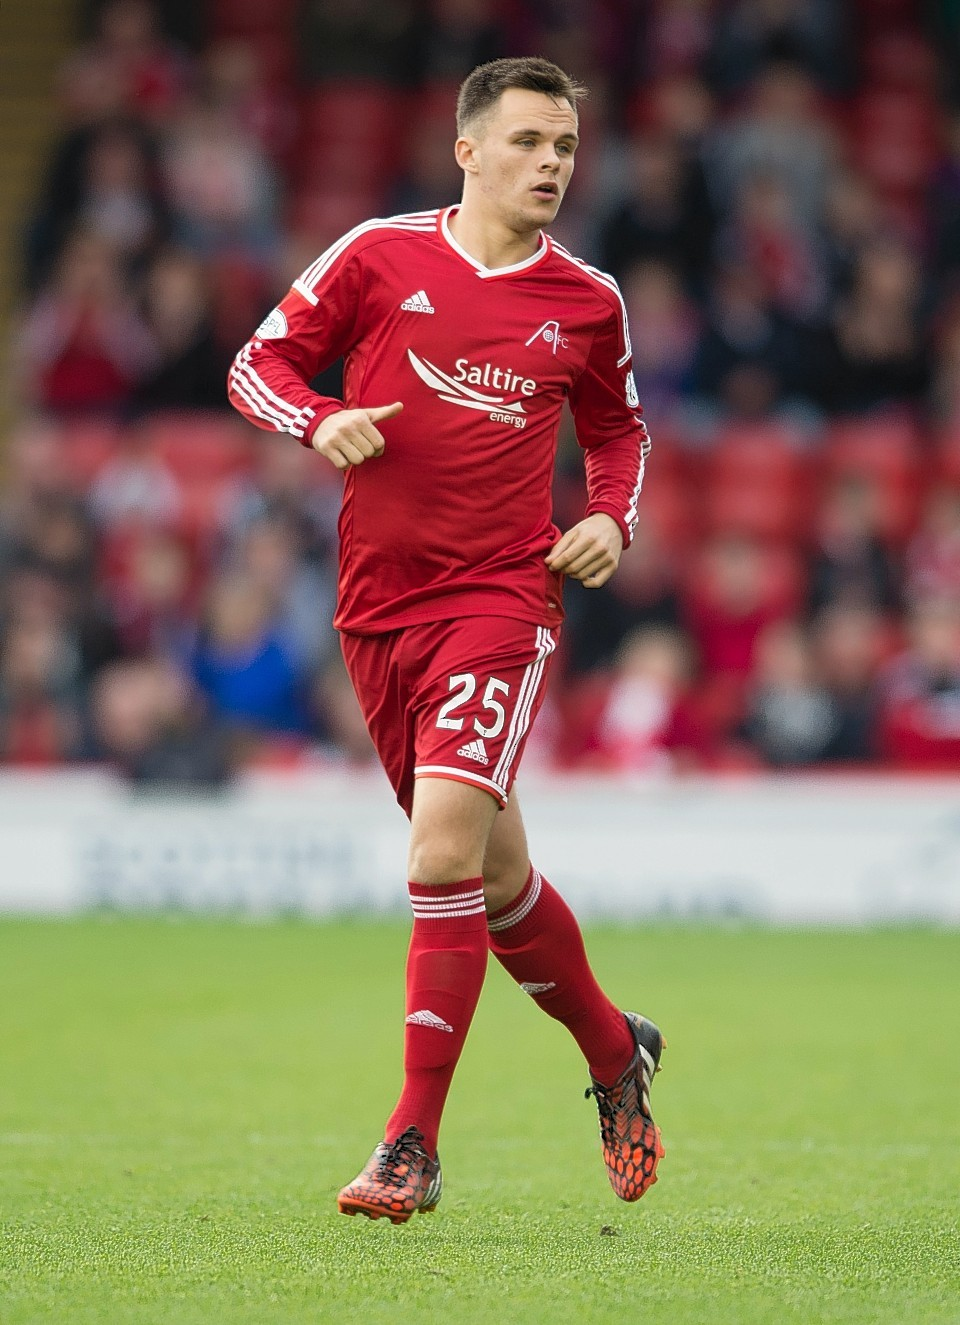 Lawrence Shankland has impressed for the Dons youths